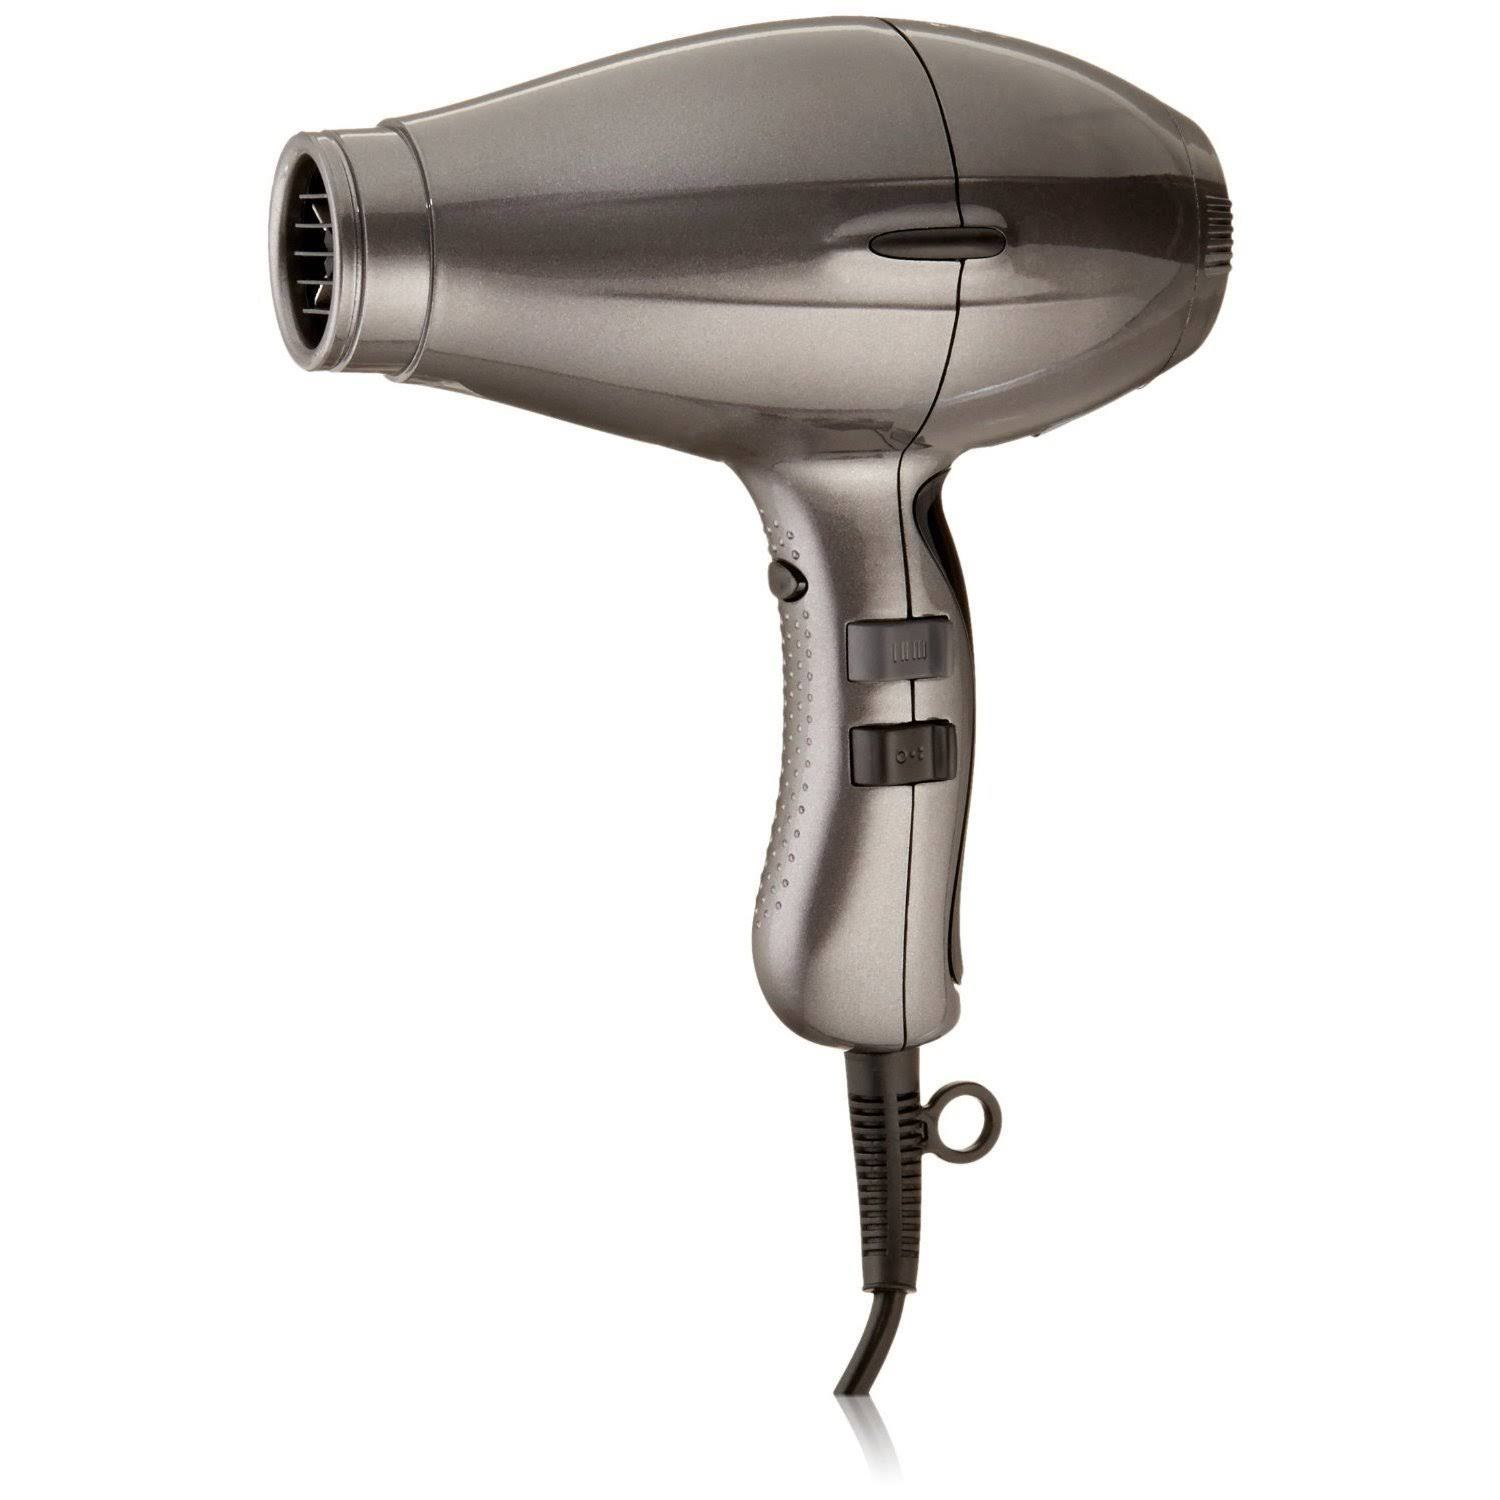 ELCHIM 3900 Light Ionic Grey Ceramic Hair Dryer (2lb 1oz)